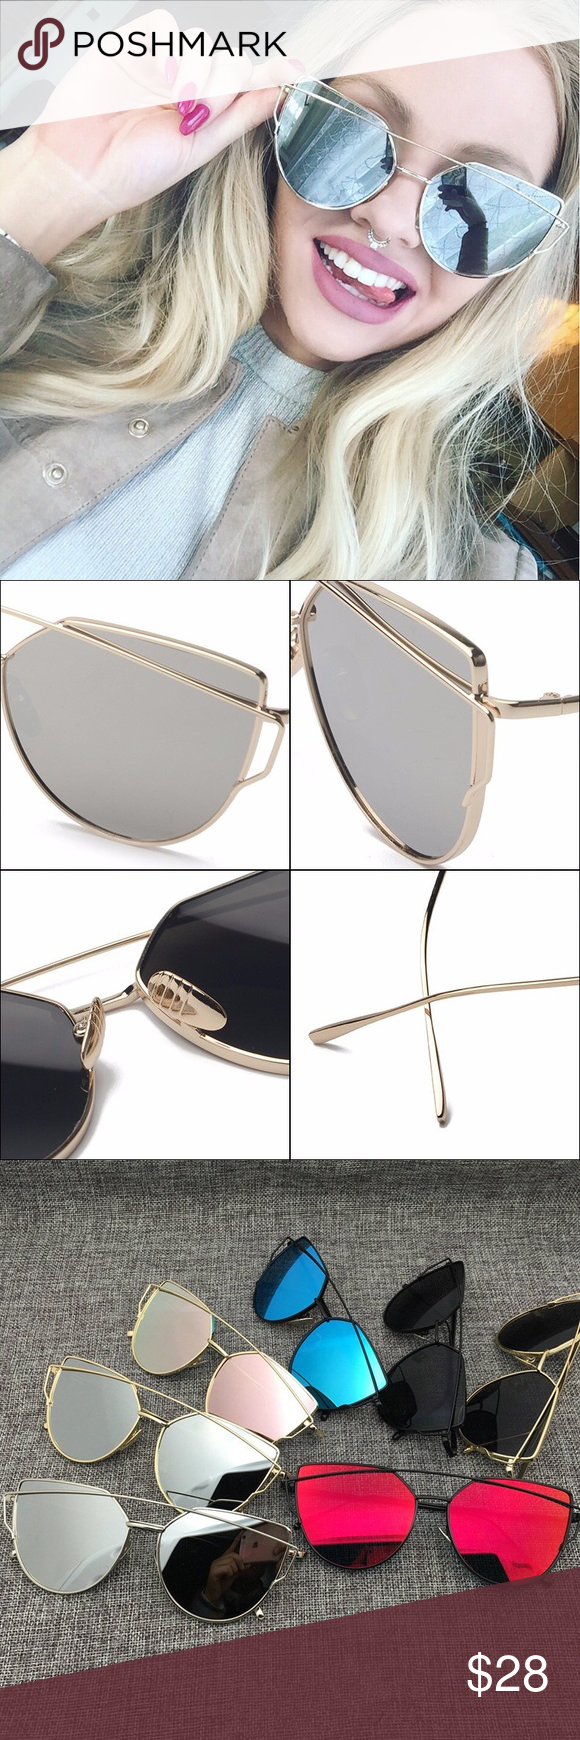 f50e695e094 Mirror Cross Wire Cat Eye Sunglasses w  Case Silver mirror lenses with  silver metal frames and nose pads. Comes with microfiber dust bag cleaning  cloth and ...